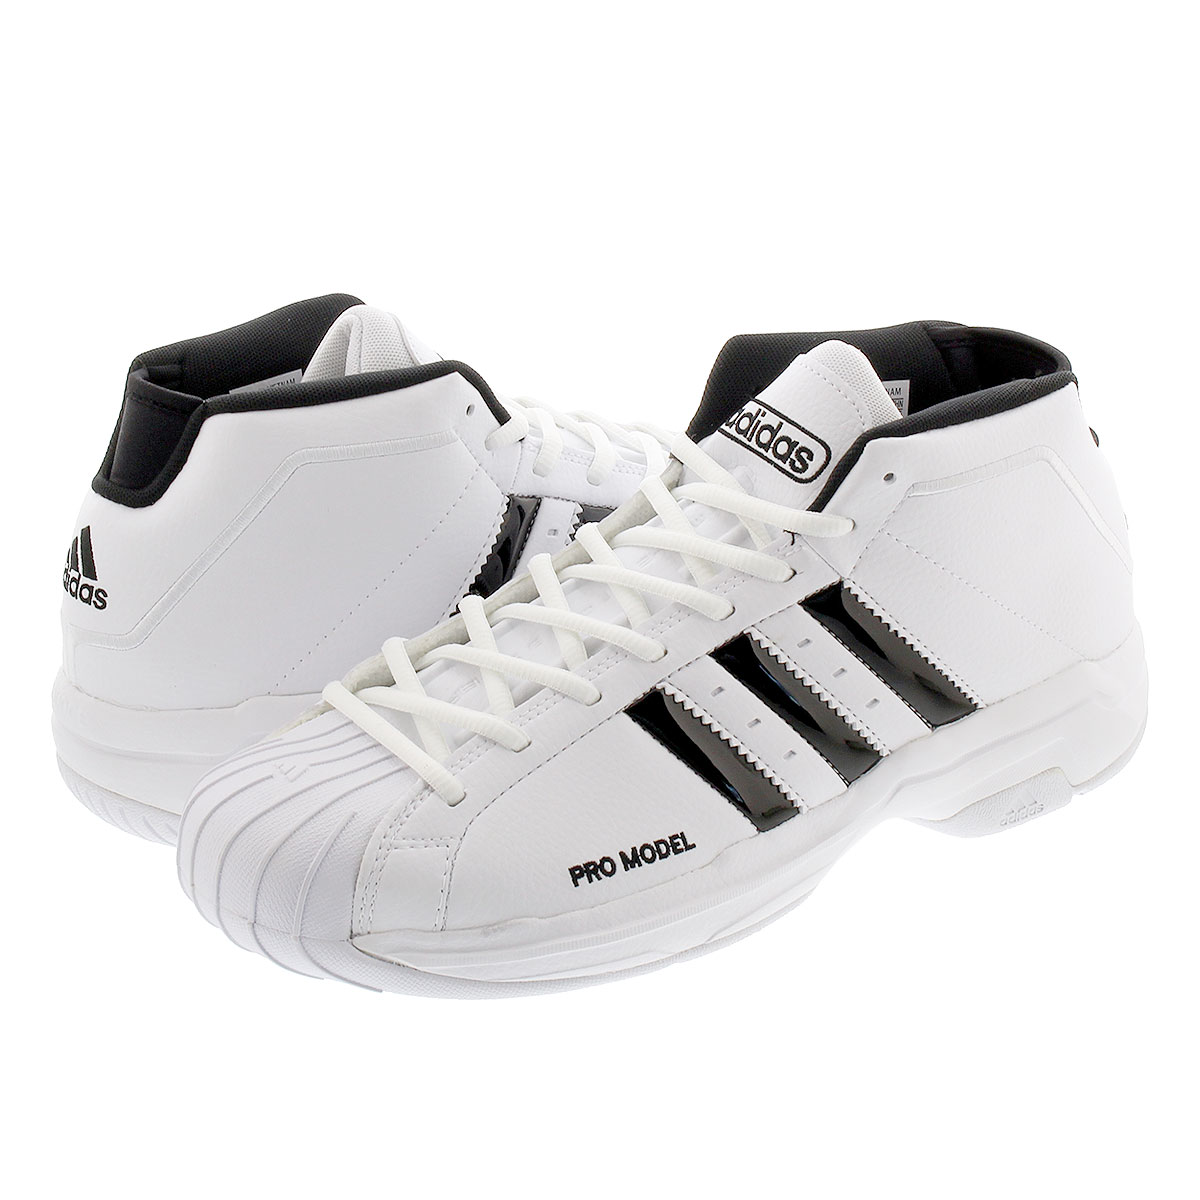 メンズ靴, スニーカー adidas PRO MODEL 2G 2G FTWR WHITECORE BLACKFTWR WHITE fw4344